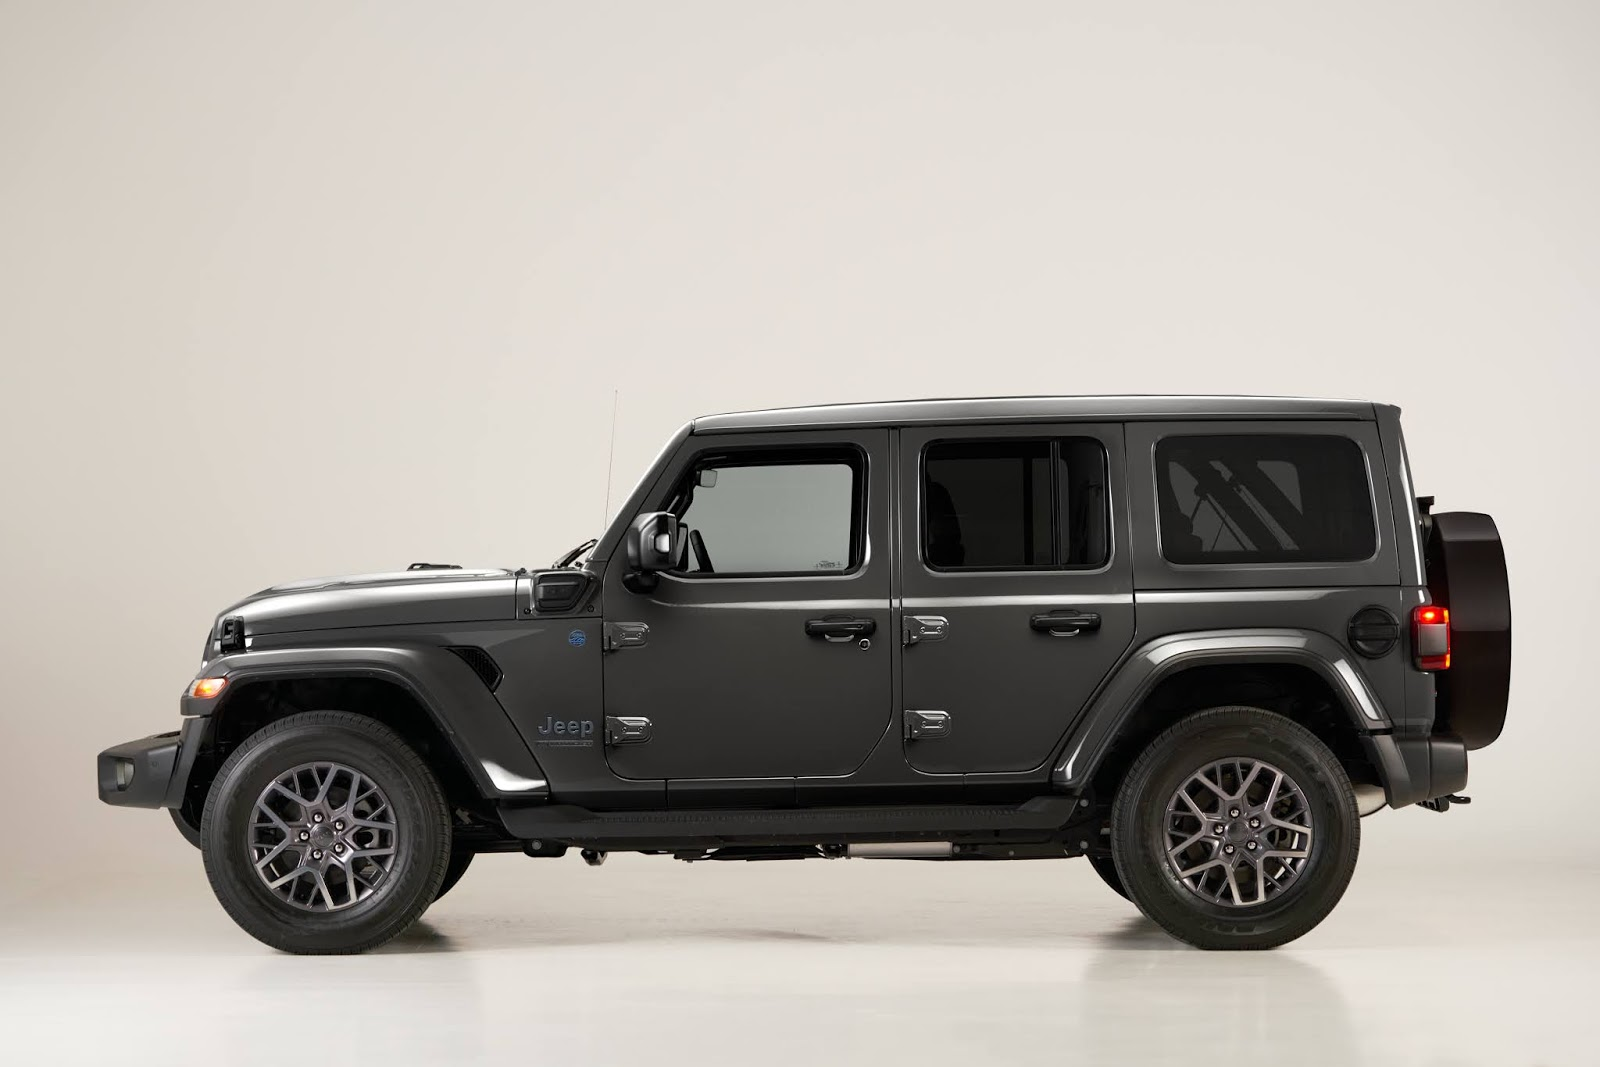 Jeep2BWrangler2B4xe2BFirst2BEdition lateral 1 Προ των Ευρωπαϊκών πυλών το νέο Plug-in Hybrid Jeep Wrangler 4xe